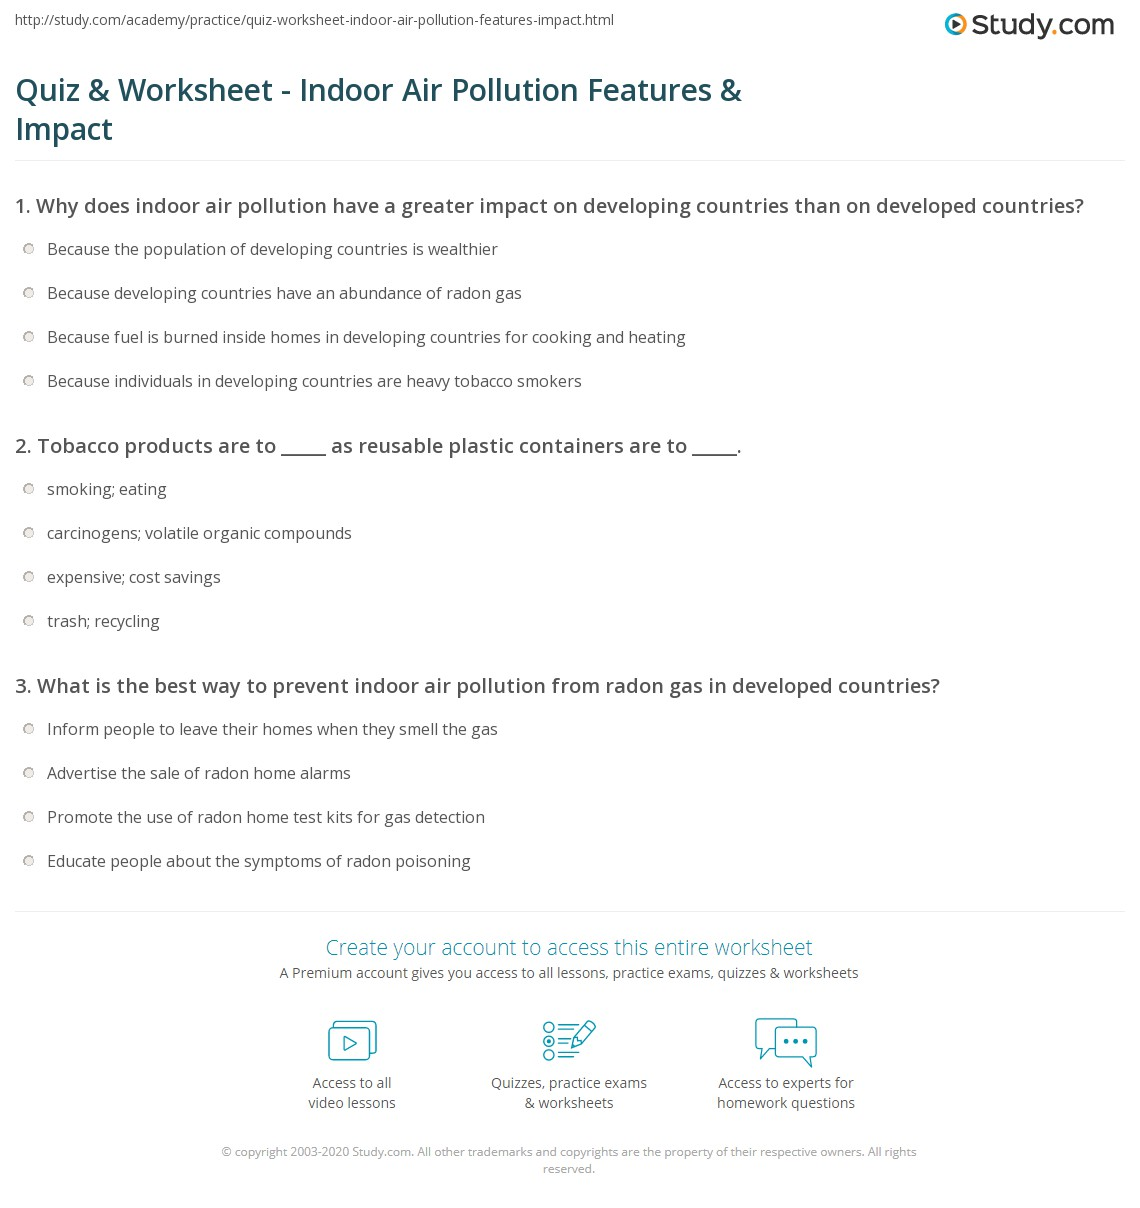 quiz worksheet indoor air pollution features impact. Black Bedroom Furniture Sets. Home Design Ideas